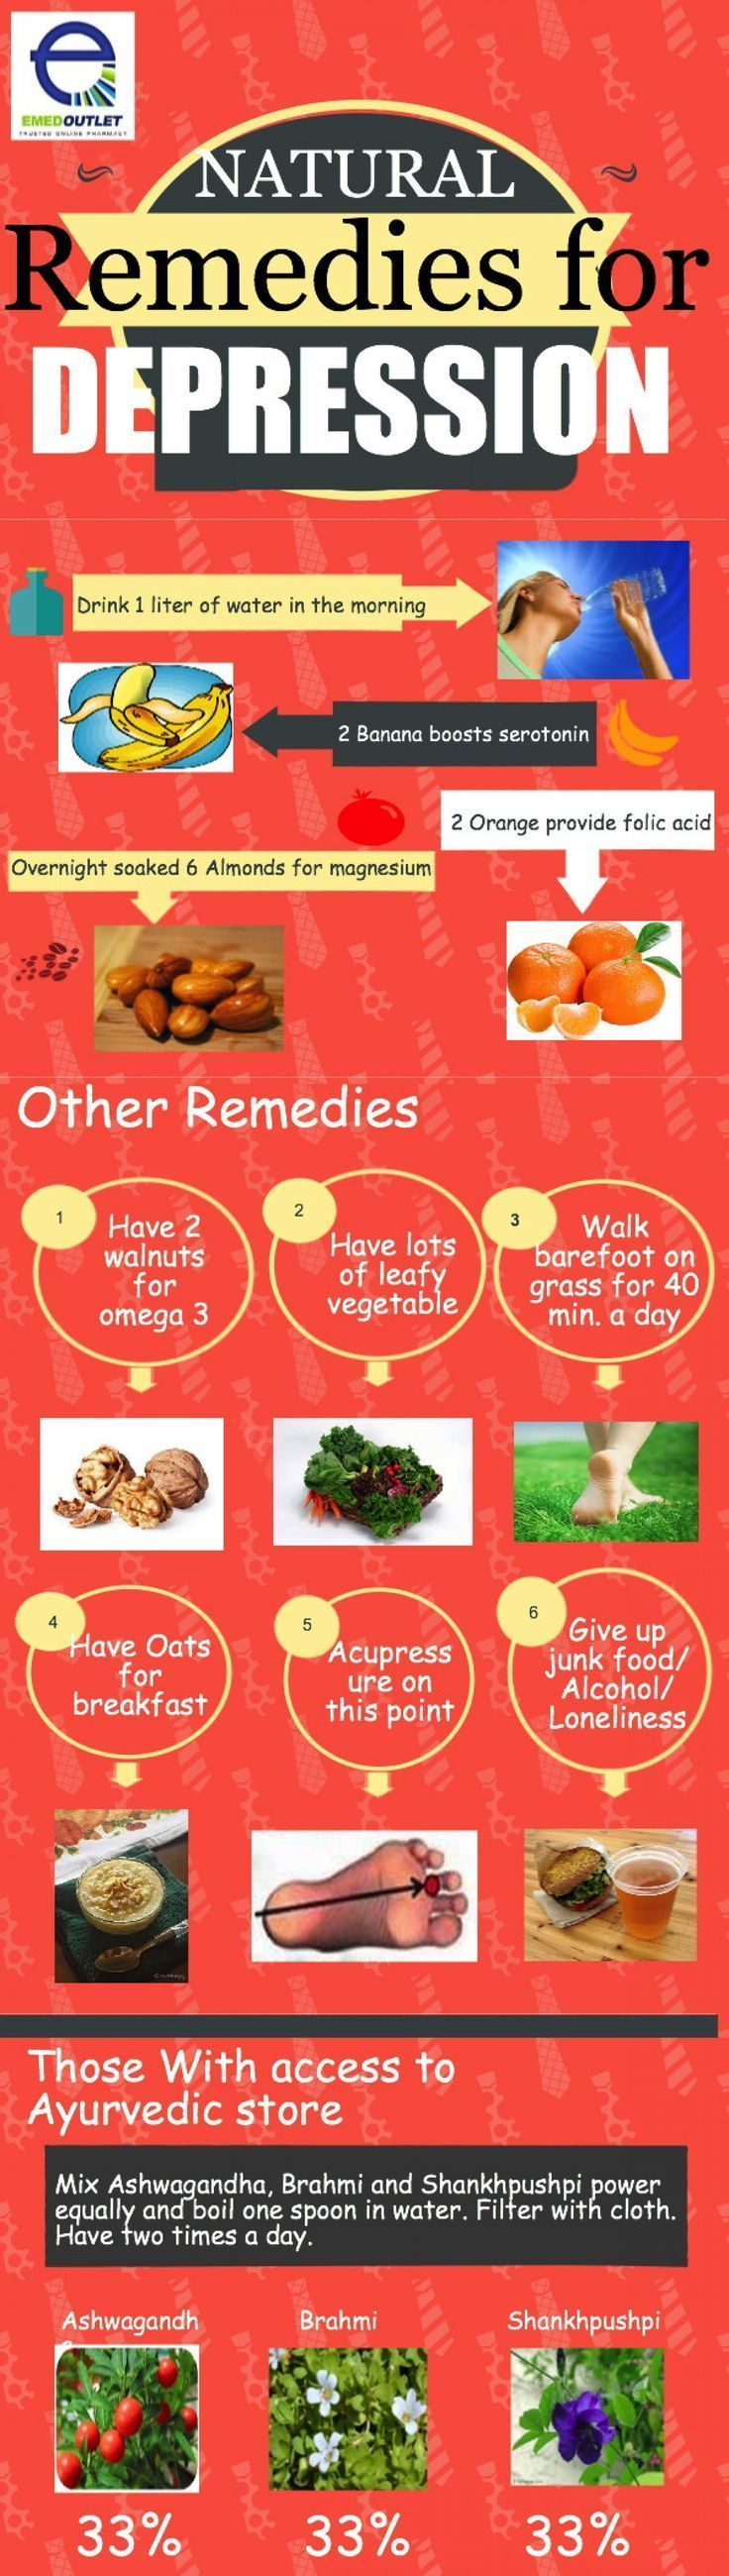 Natural Remedies For Depression --shared by markturner415 on Aug 02, 2014 - See more at: http://visual.ly... |